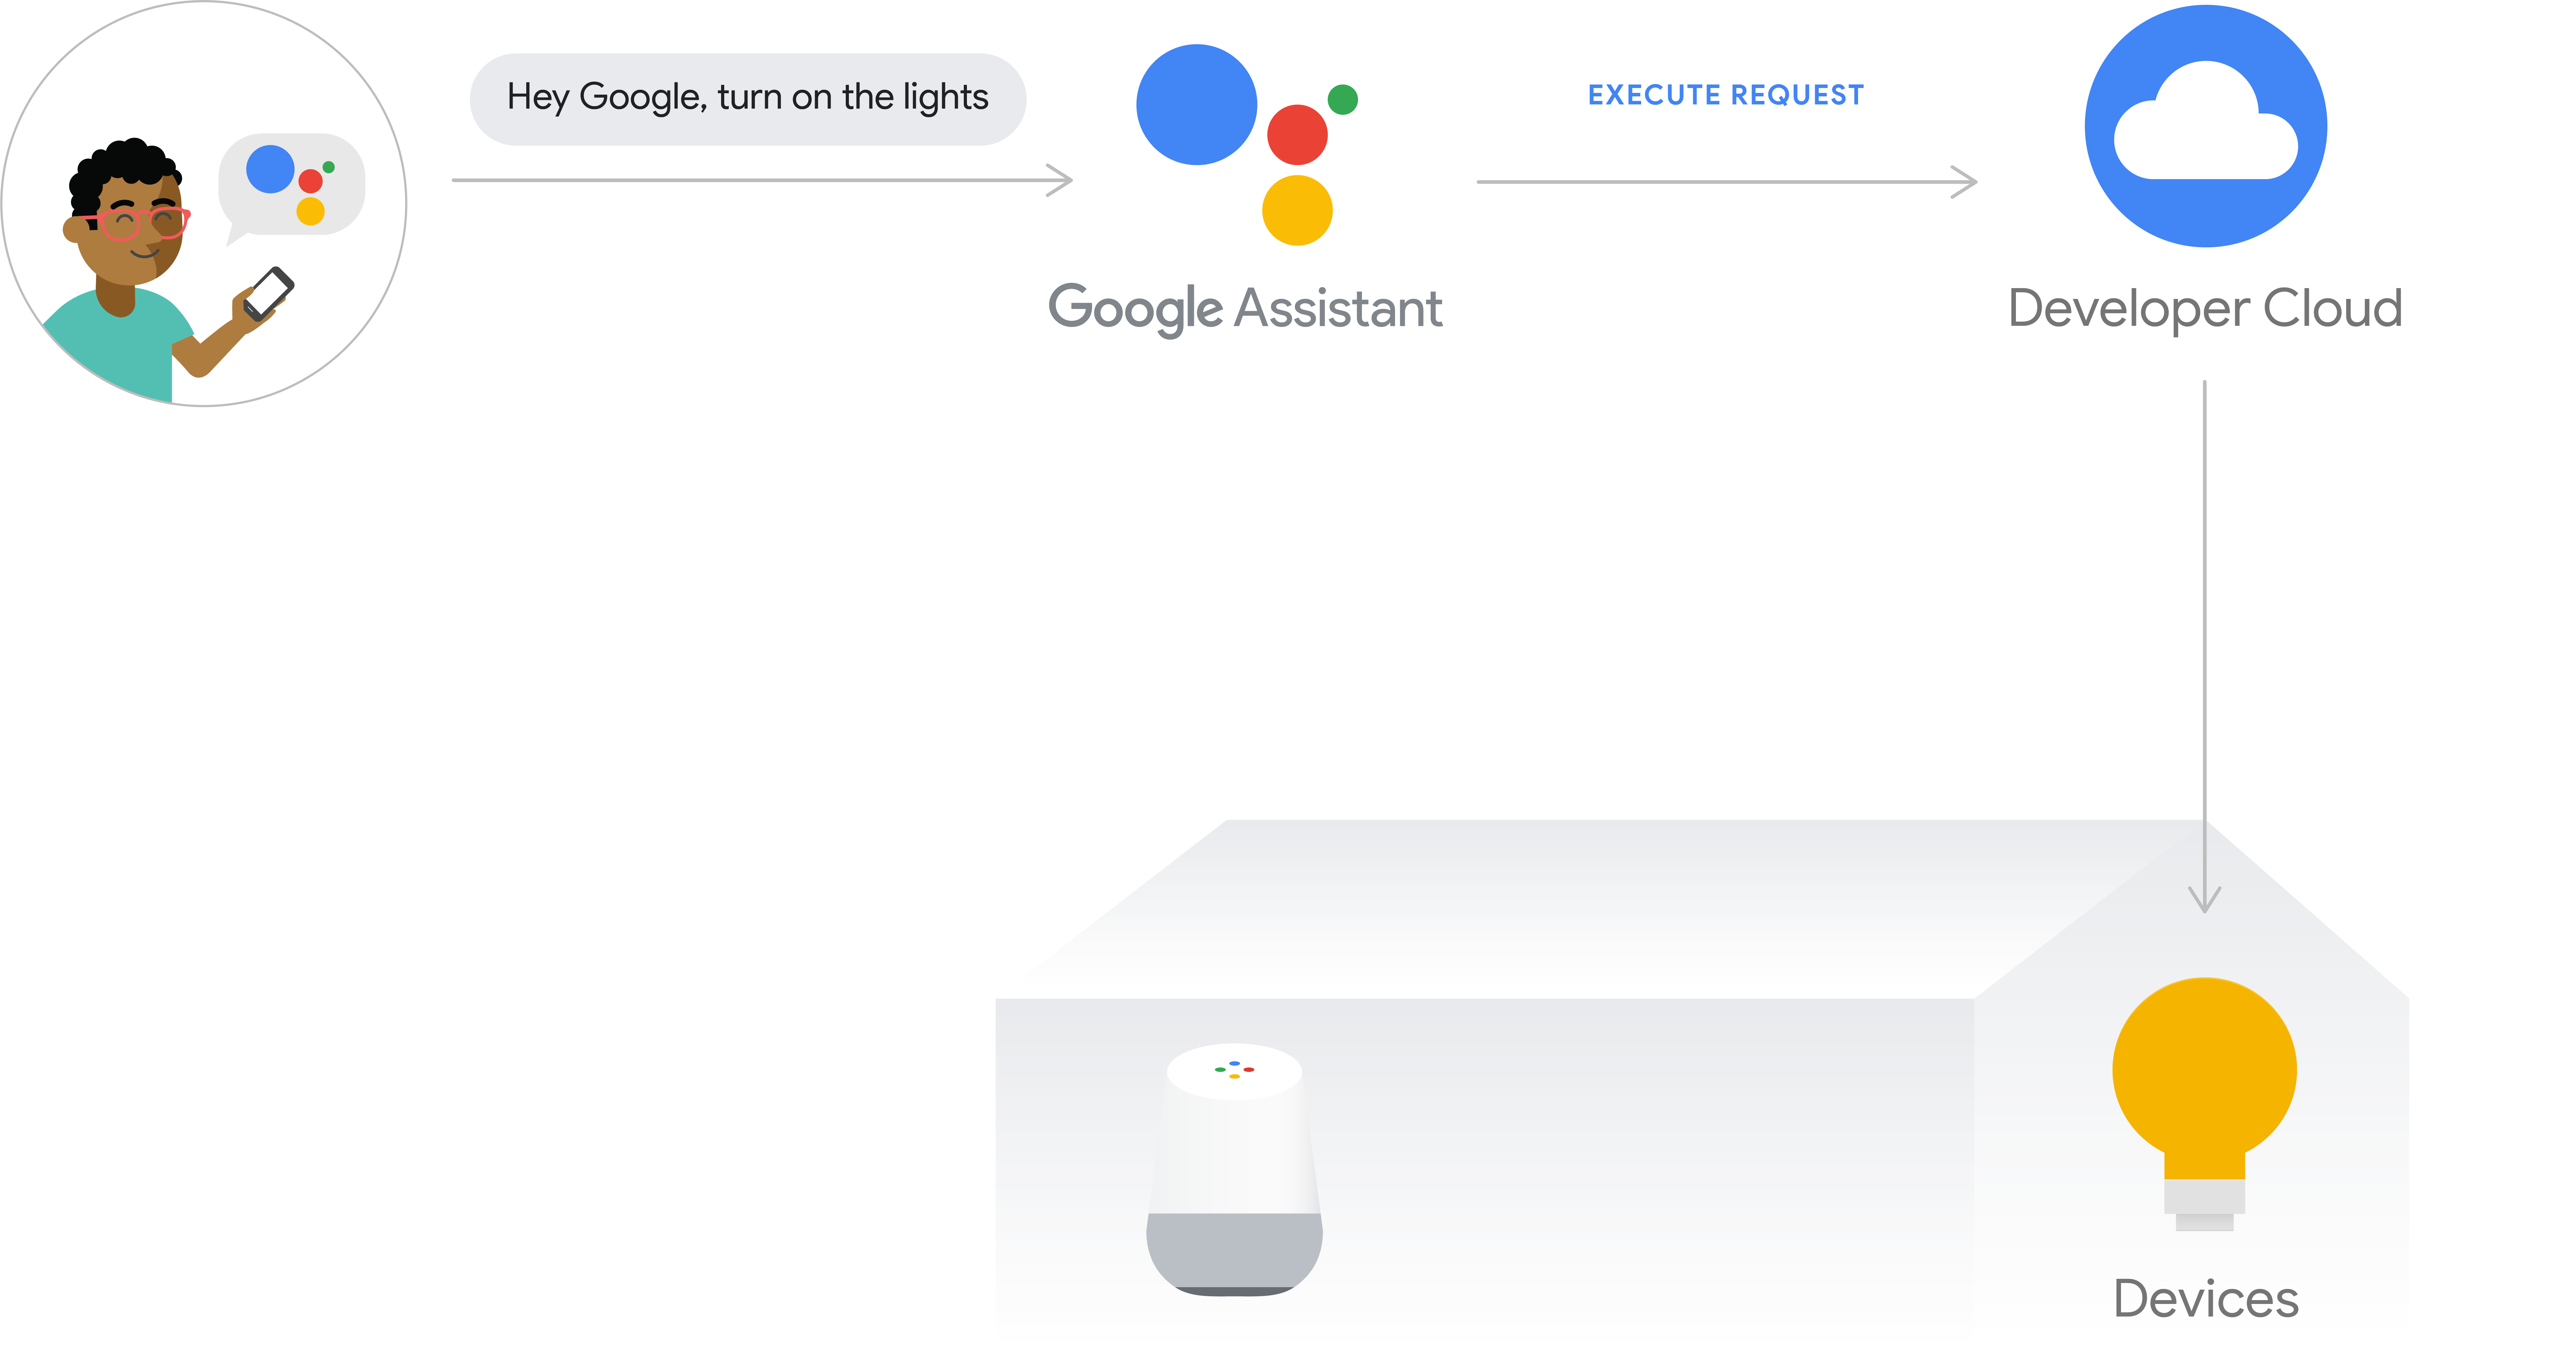 This figure shows the execution flow for cloud execution. The             execution path captures a user's intent from a phone with             Google Assistant, then the user intent is processed by             the Google Cloud, then the request is sent to the developer cloud,             and then the command is issued to the device hub or             directly to the device.